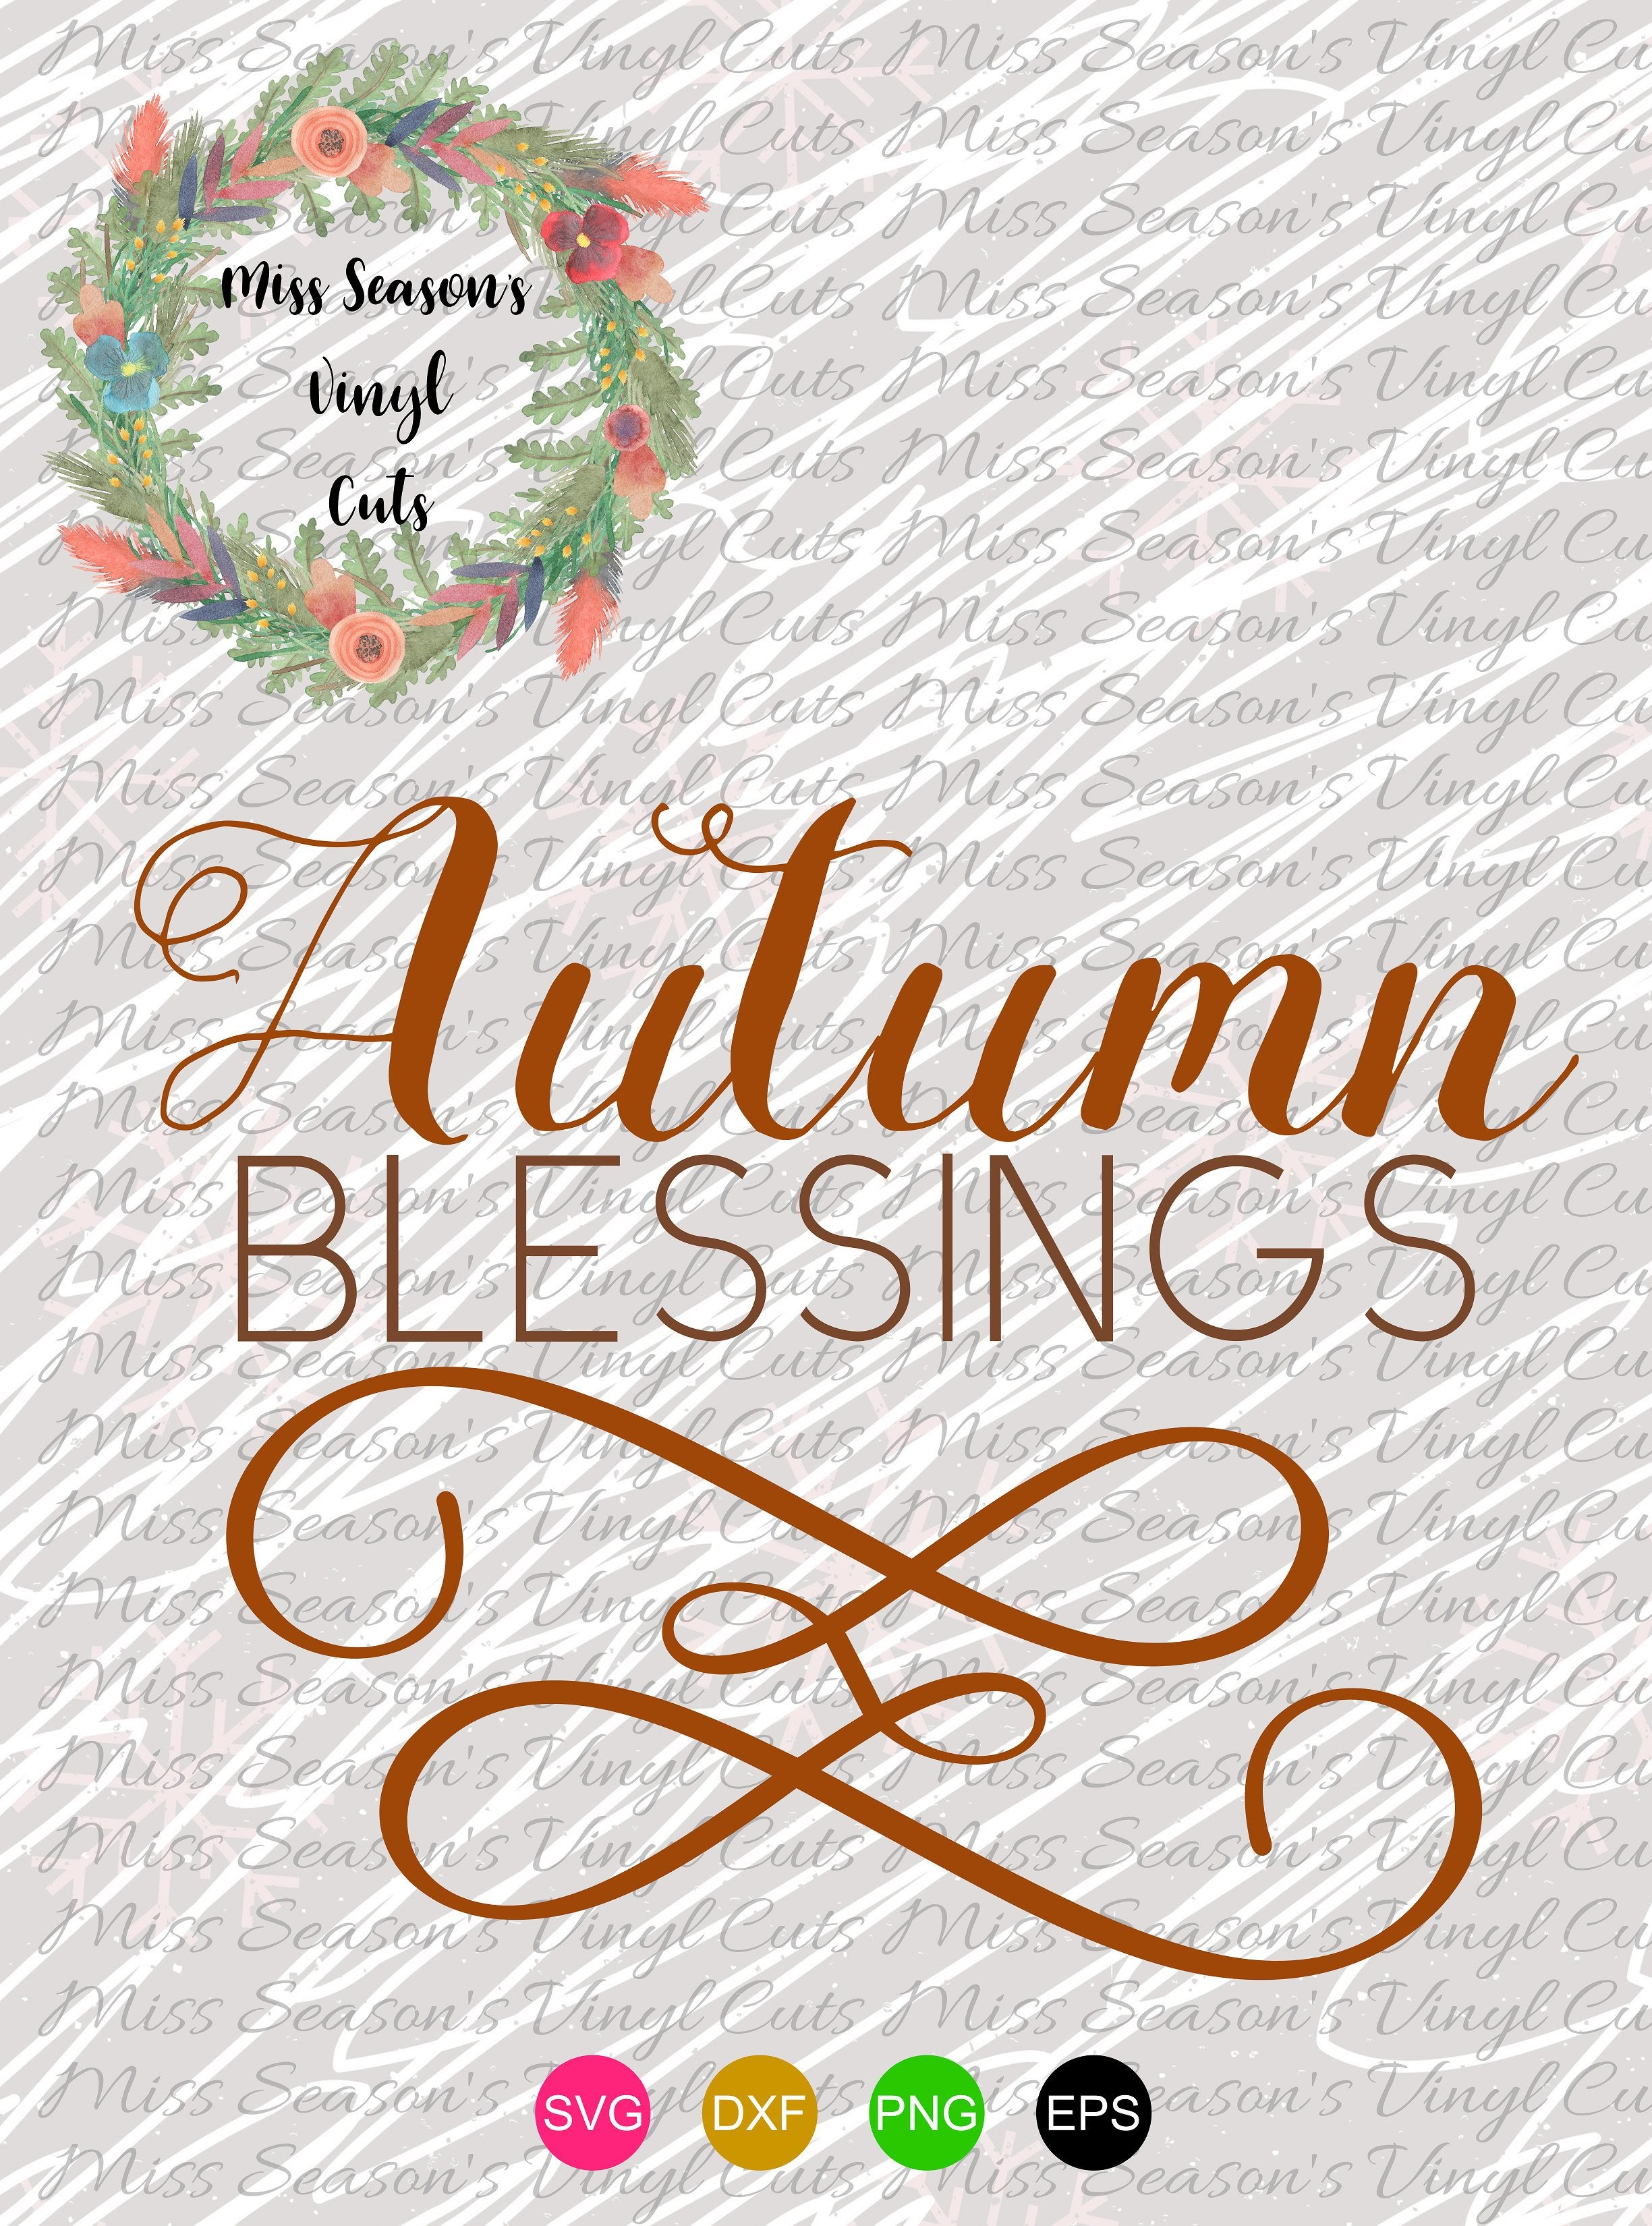 Autumn Blessings SVG Png Dxf eps example image 2